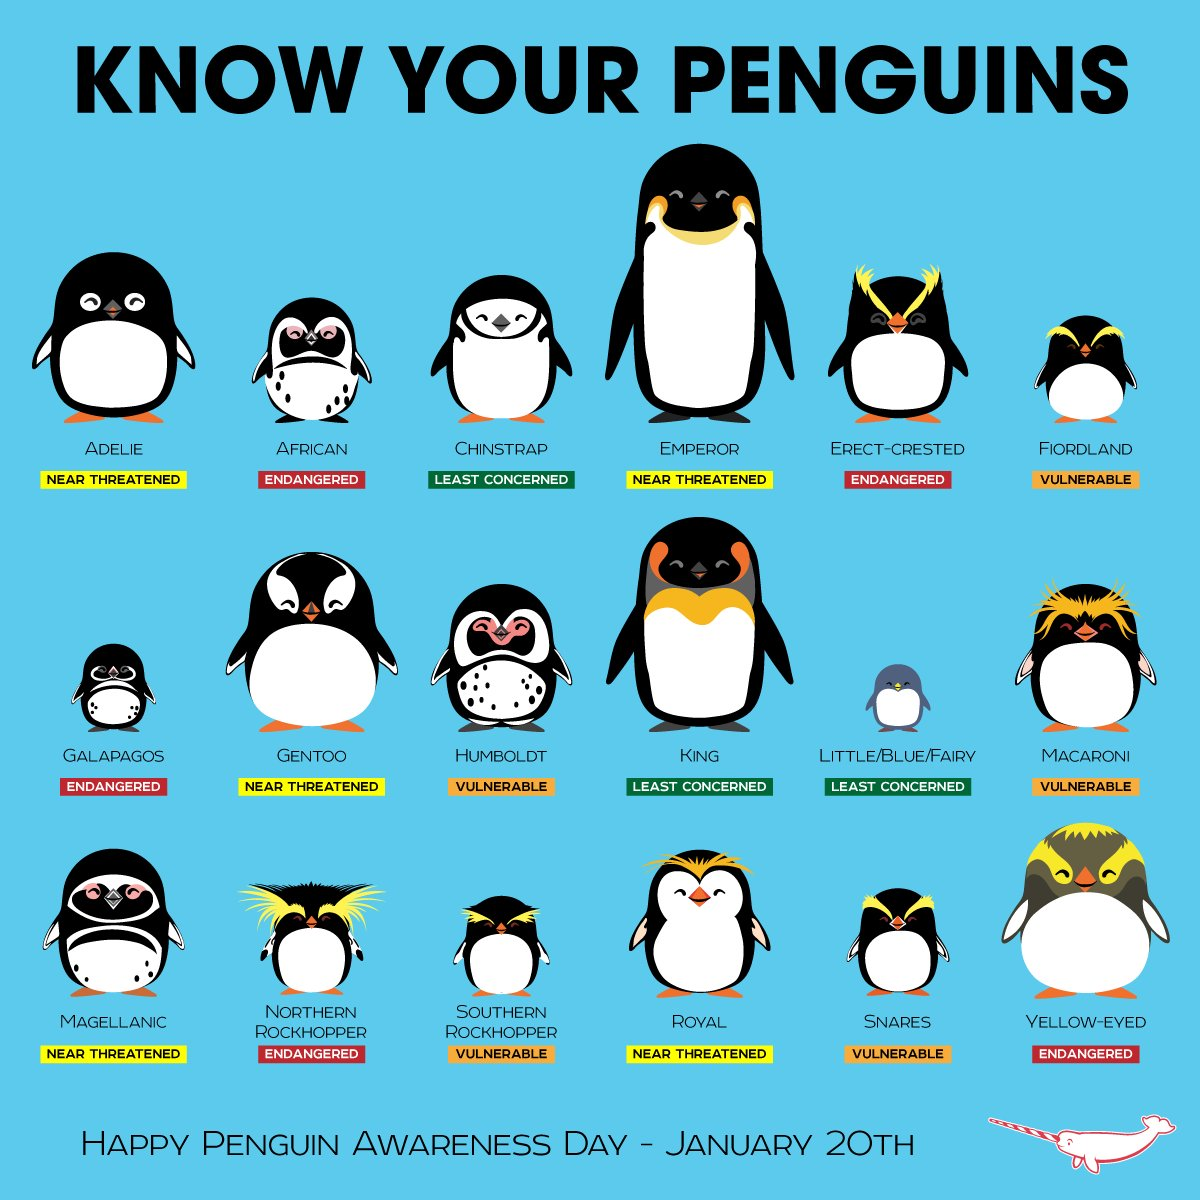 Know your King Penguins from Emperors? #KnowyourPenguins #PenguinAwarenessDay